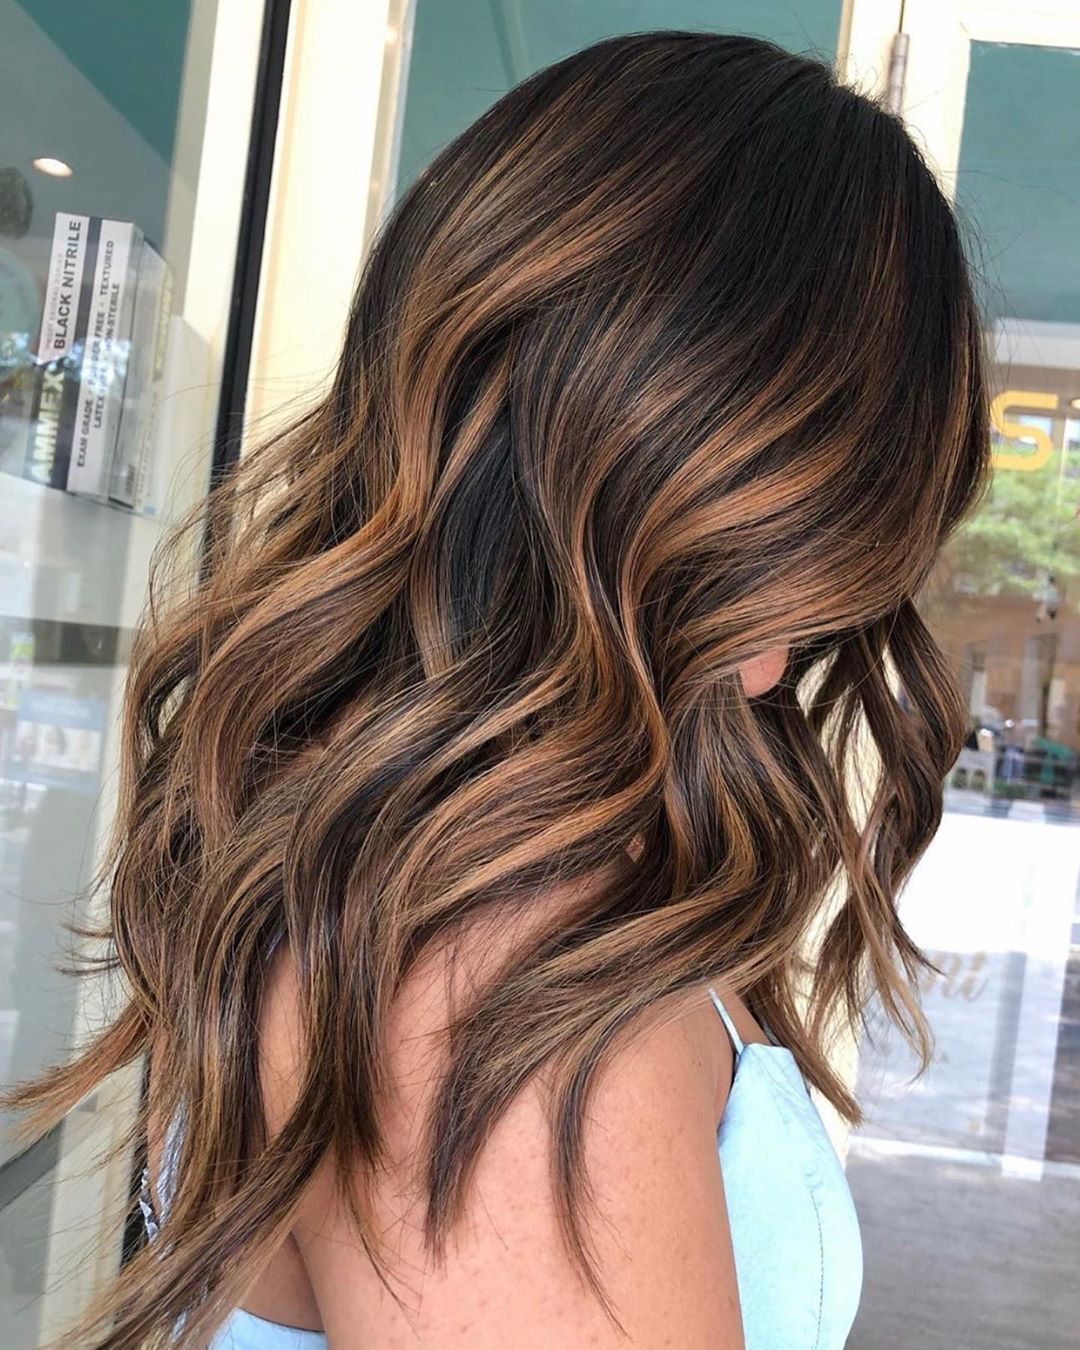 35+ Caramel Hair Color Ideas & Trends: Highlights, Styles and More